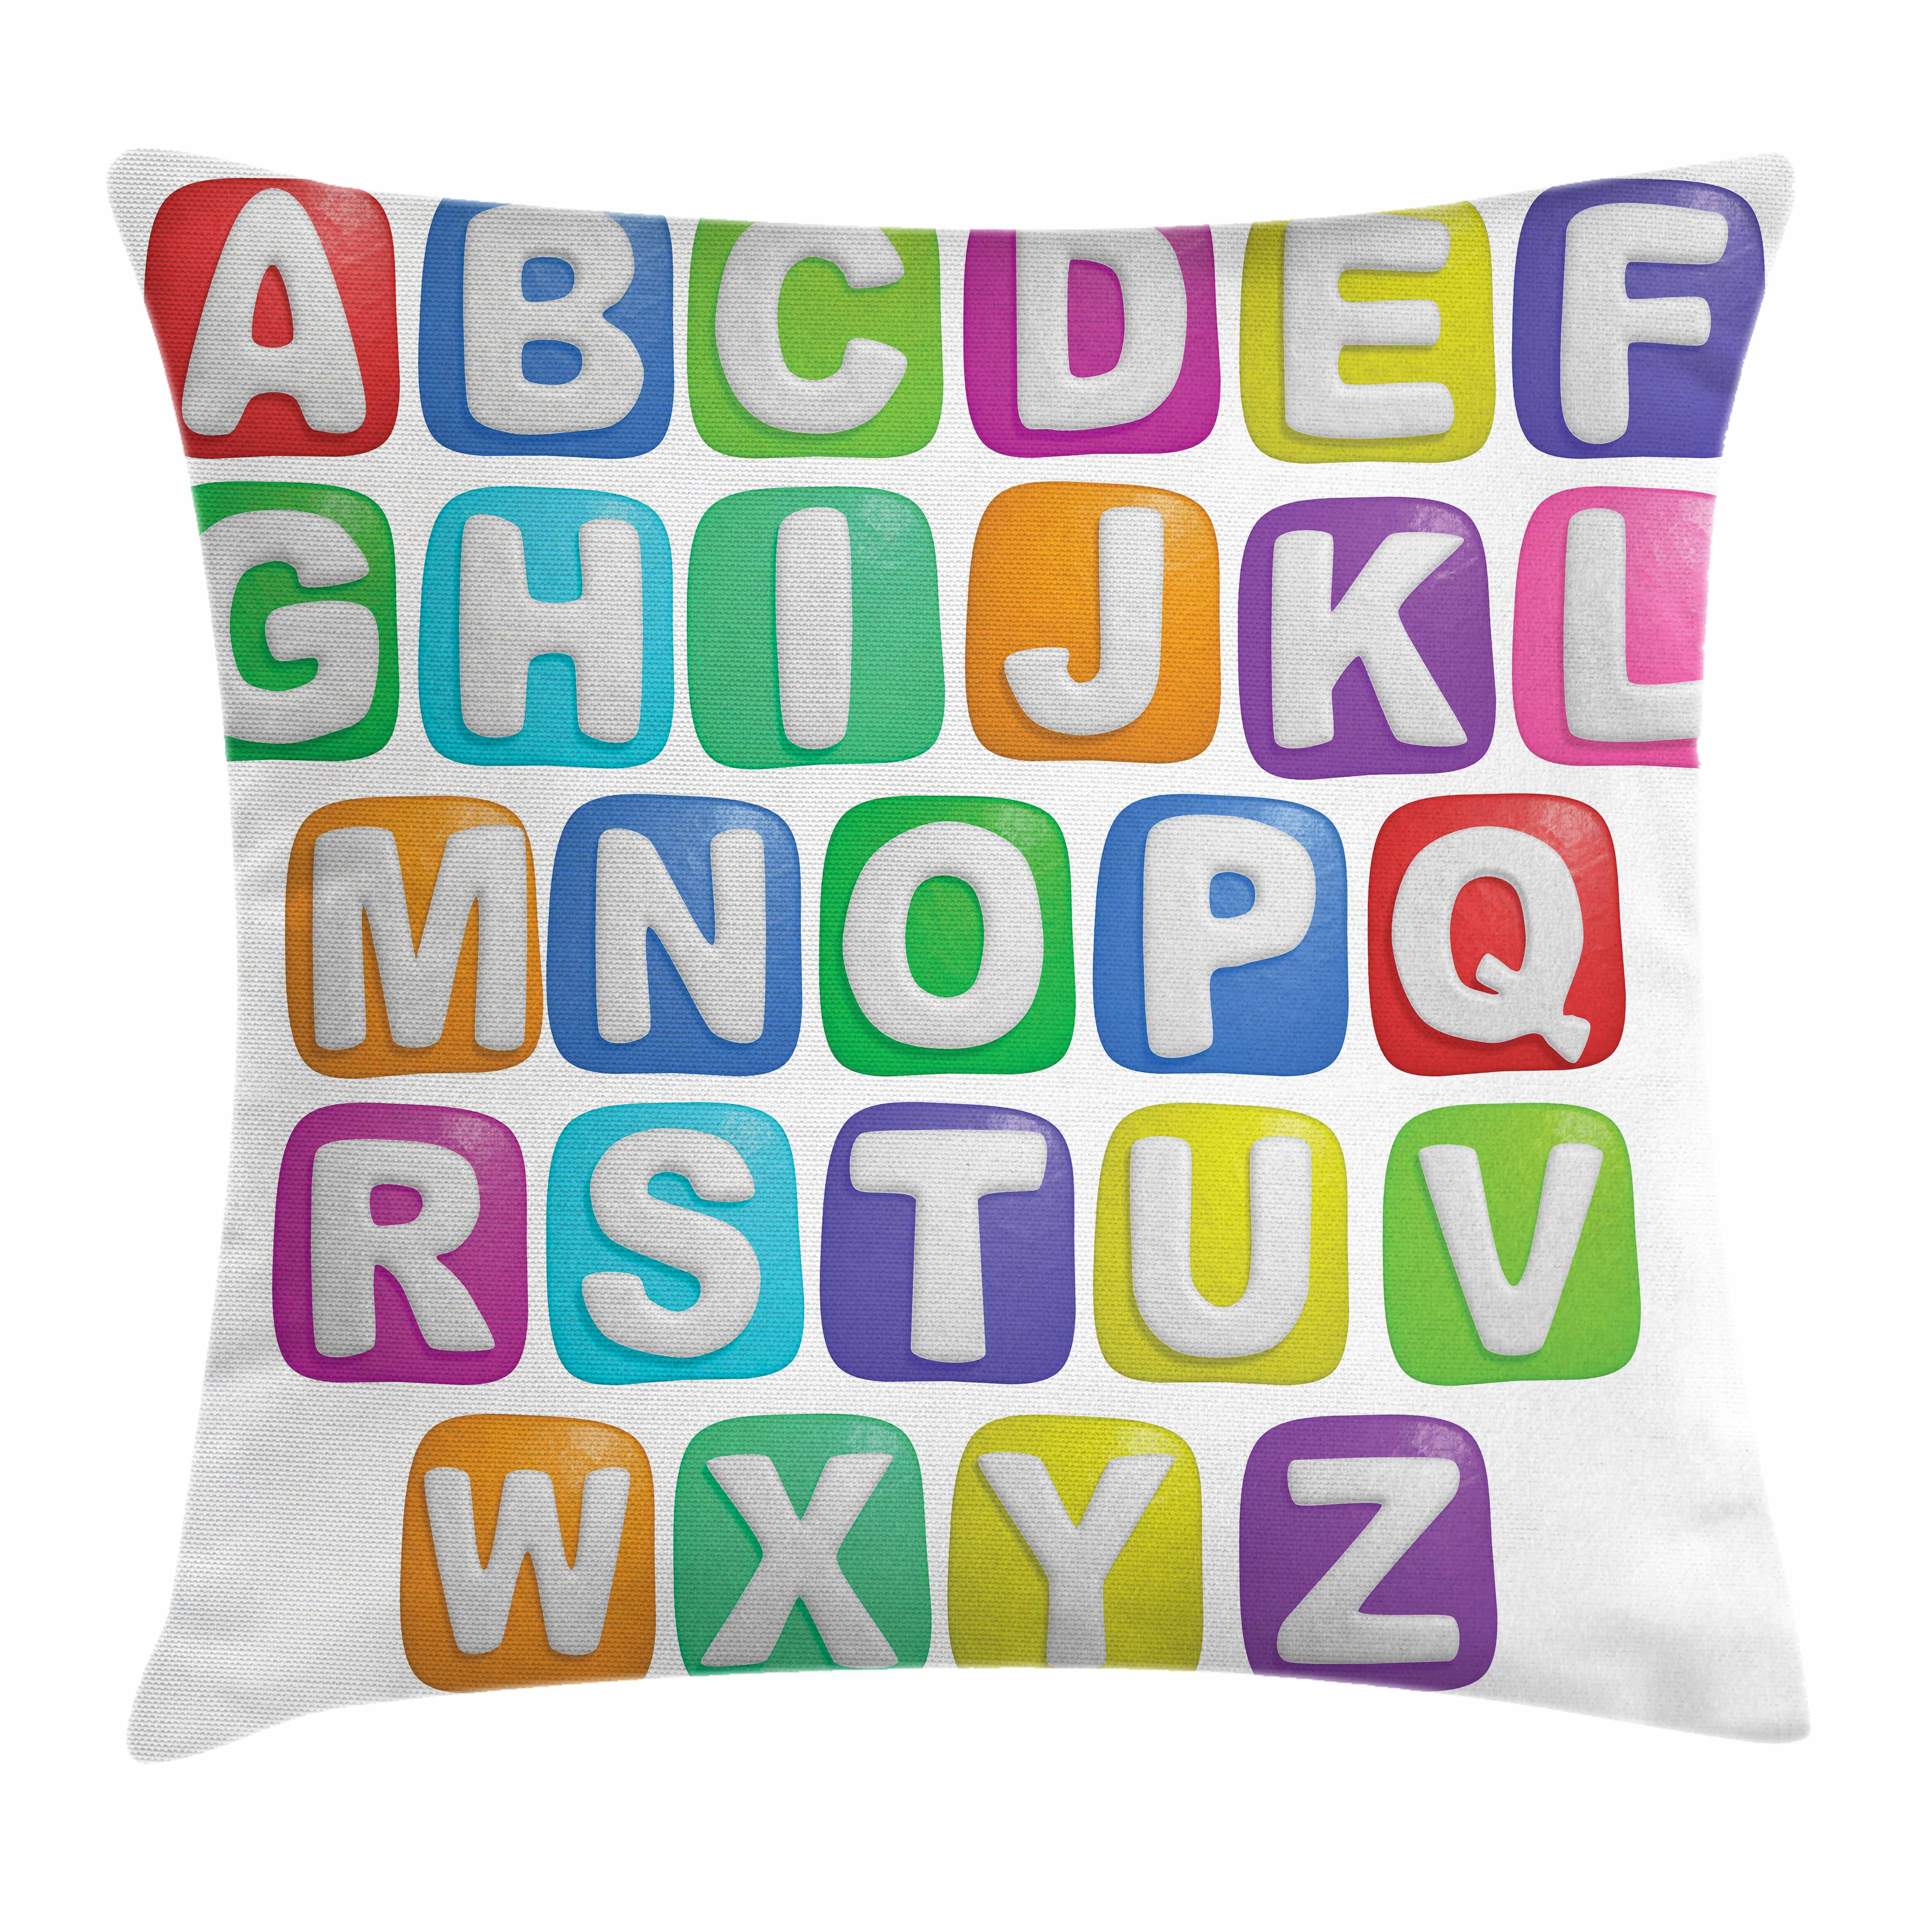 Letter Throw Pillow Cushion Cover, Cartoon Style Colorful Alphabet Squares Children Kids Nursery Kindergarten Design, Decorative Square Accent Pillow Case, 18 X 18 Inches, Multicolor, by Ambesonne